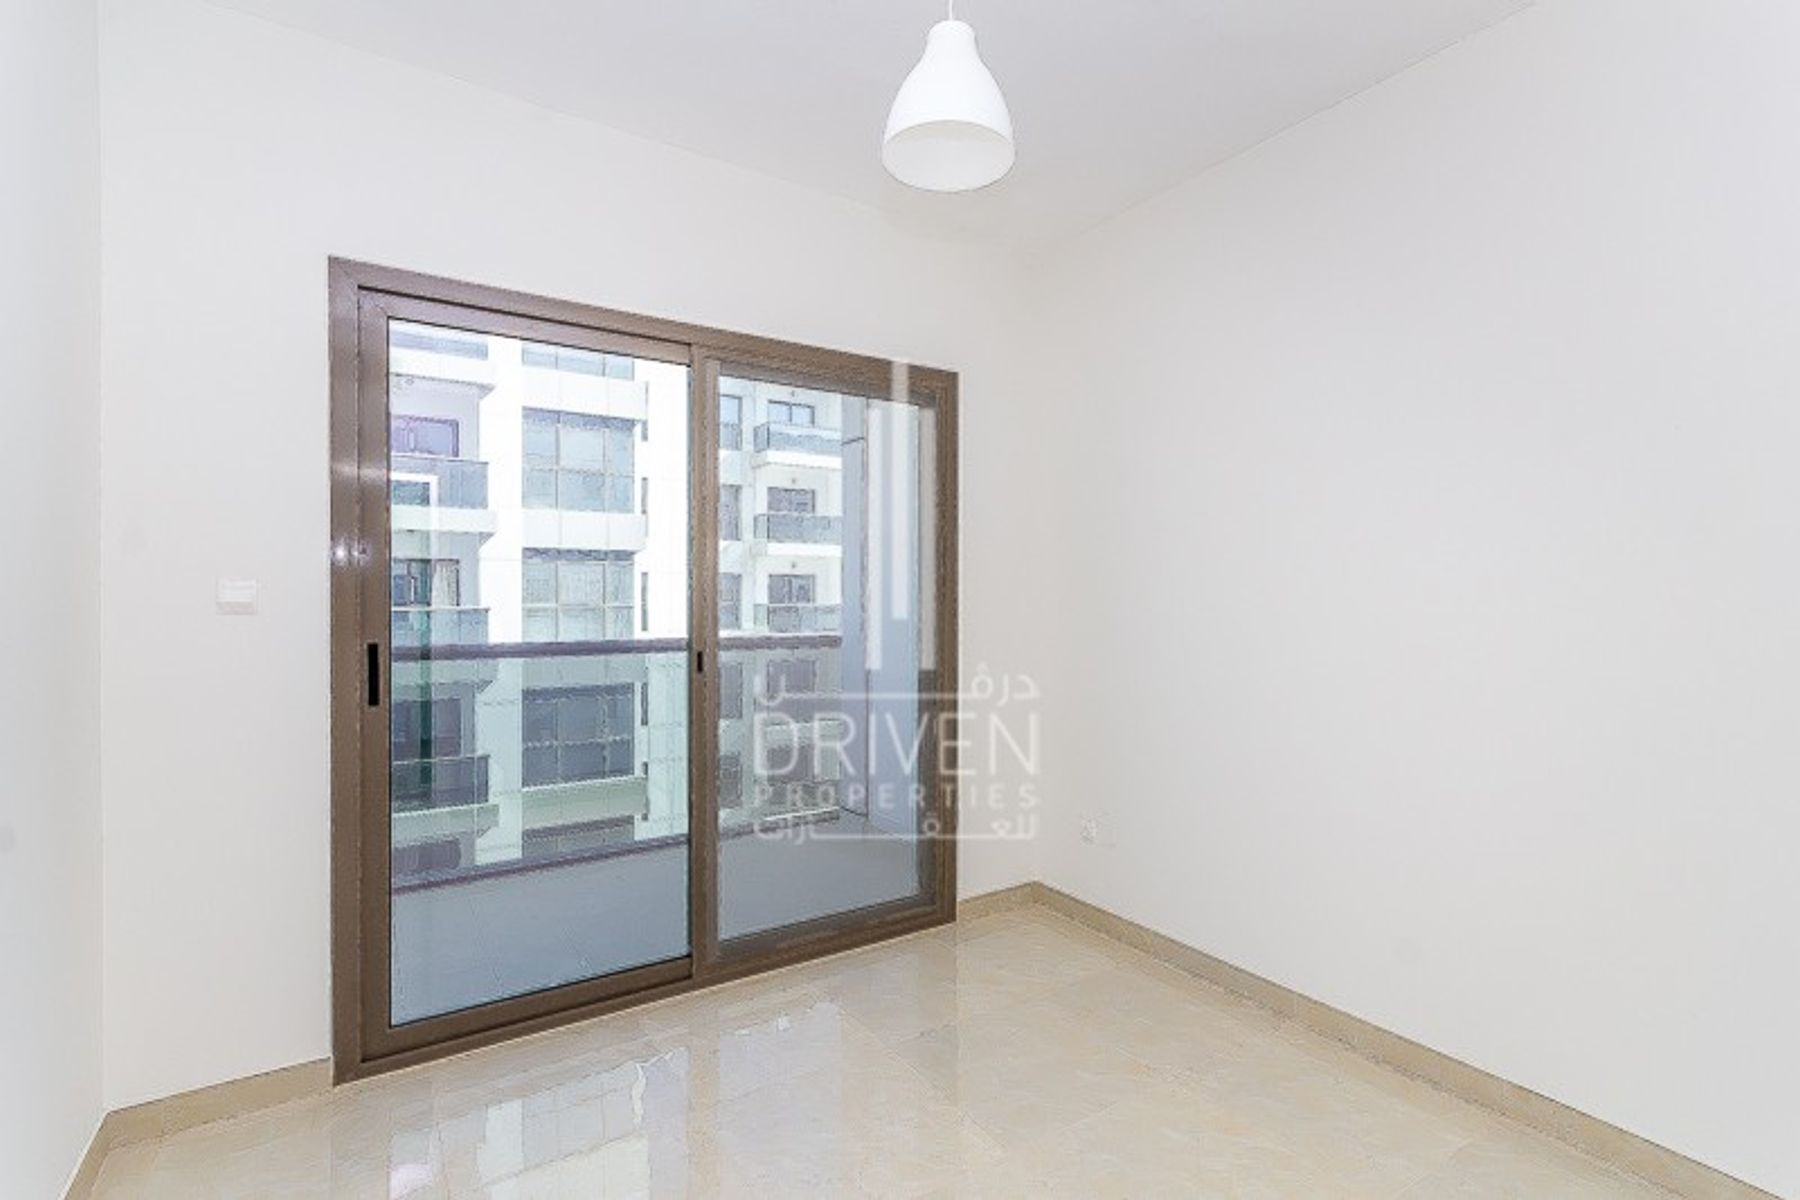 For Sale Brand New Bright 3 Bedroom Apt.